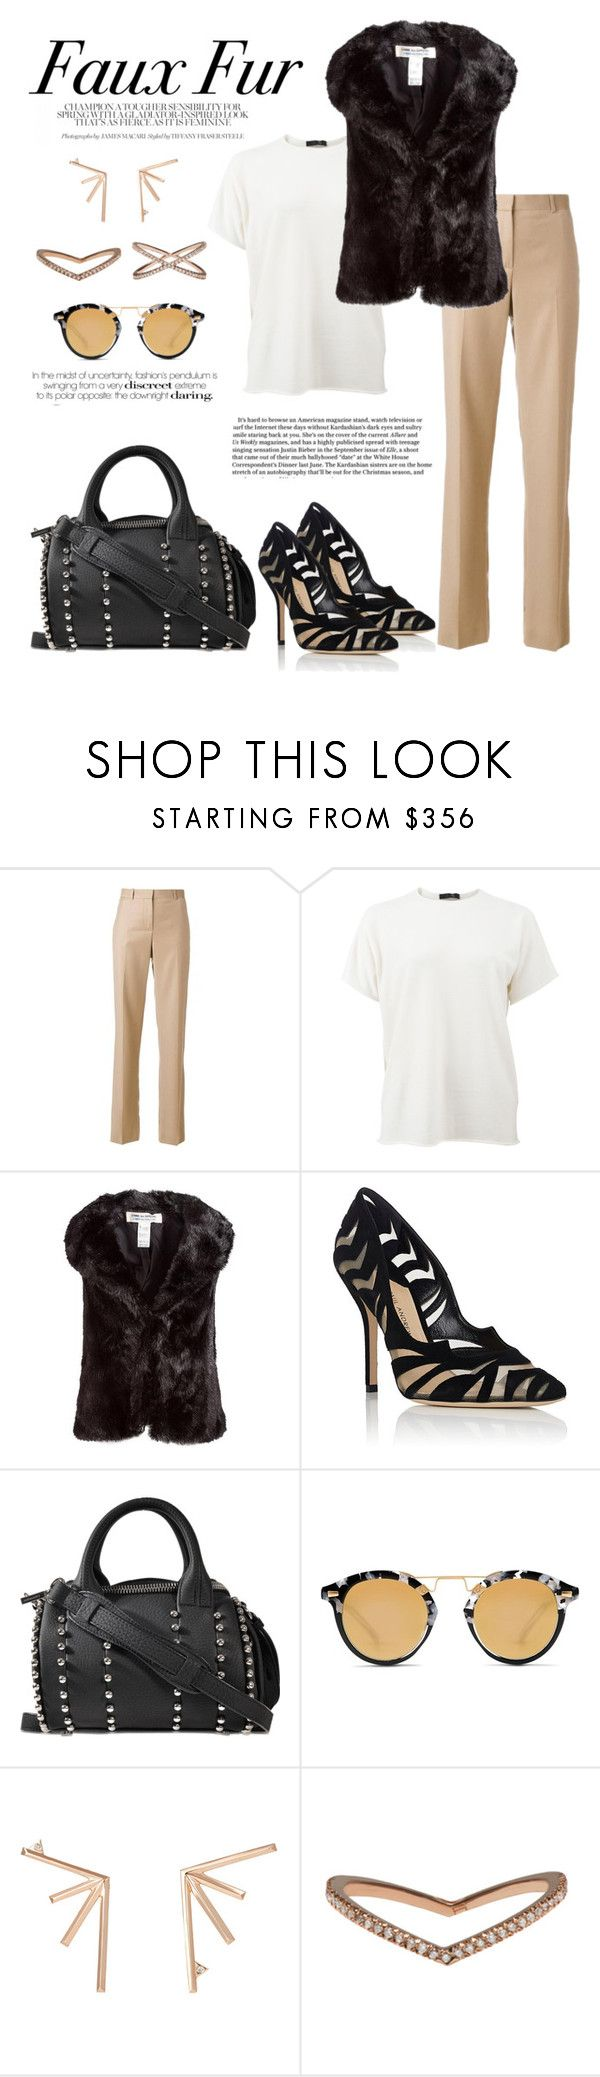 """""""Faux Fur"""" by windrasiregar on Polyvore featuring Givenchy, The Row, Comme des Garçons, Paul Andrew, Alexander Wang, Krewe and Eva Fehren"""